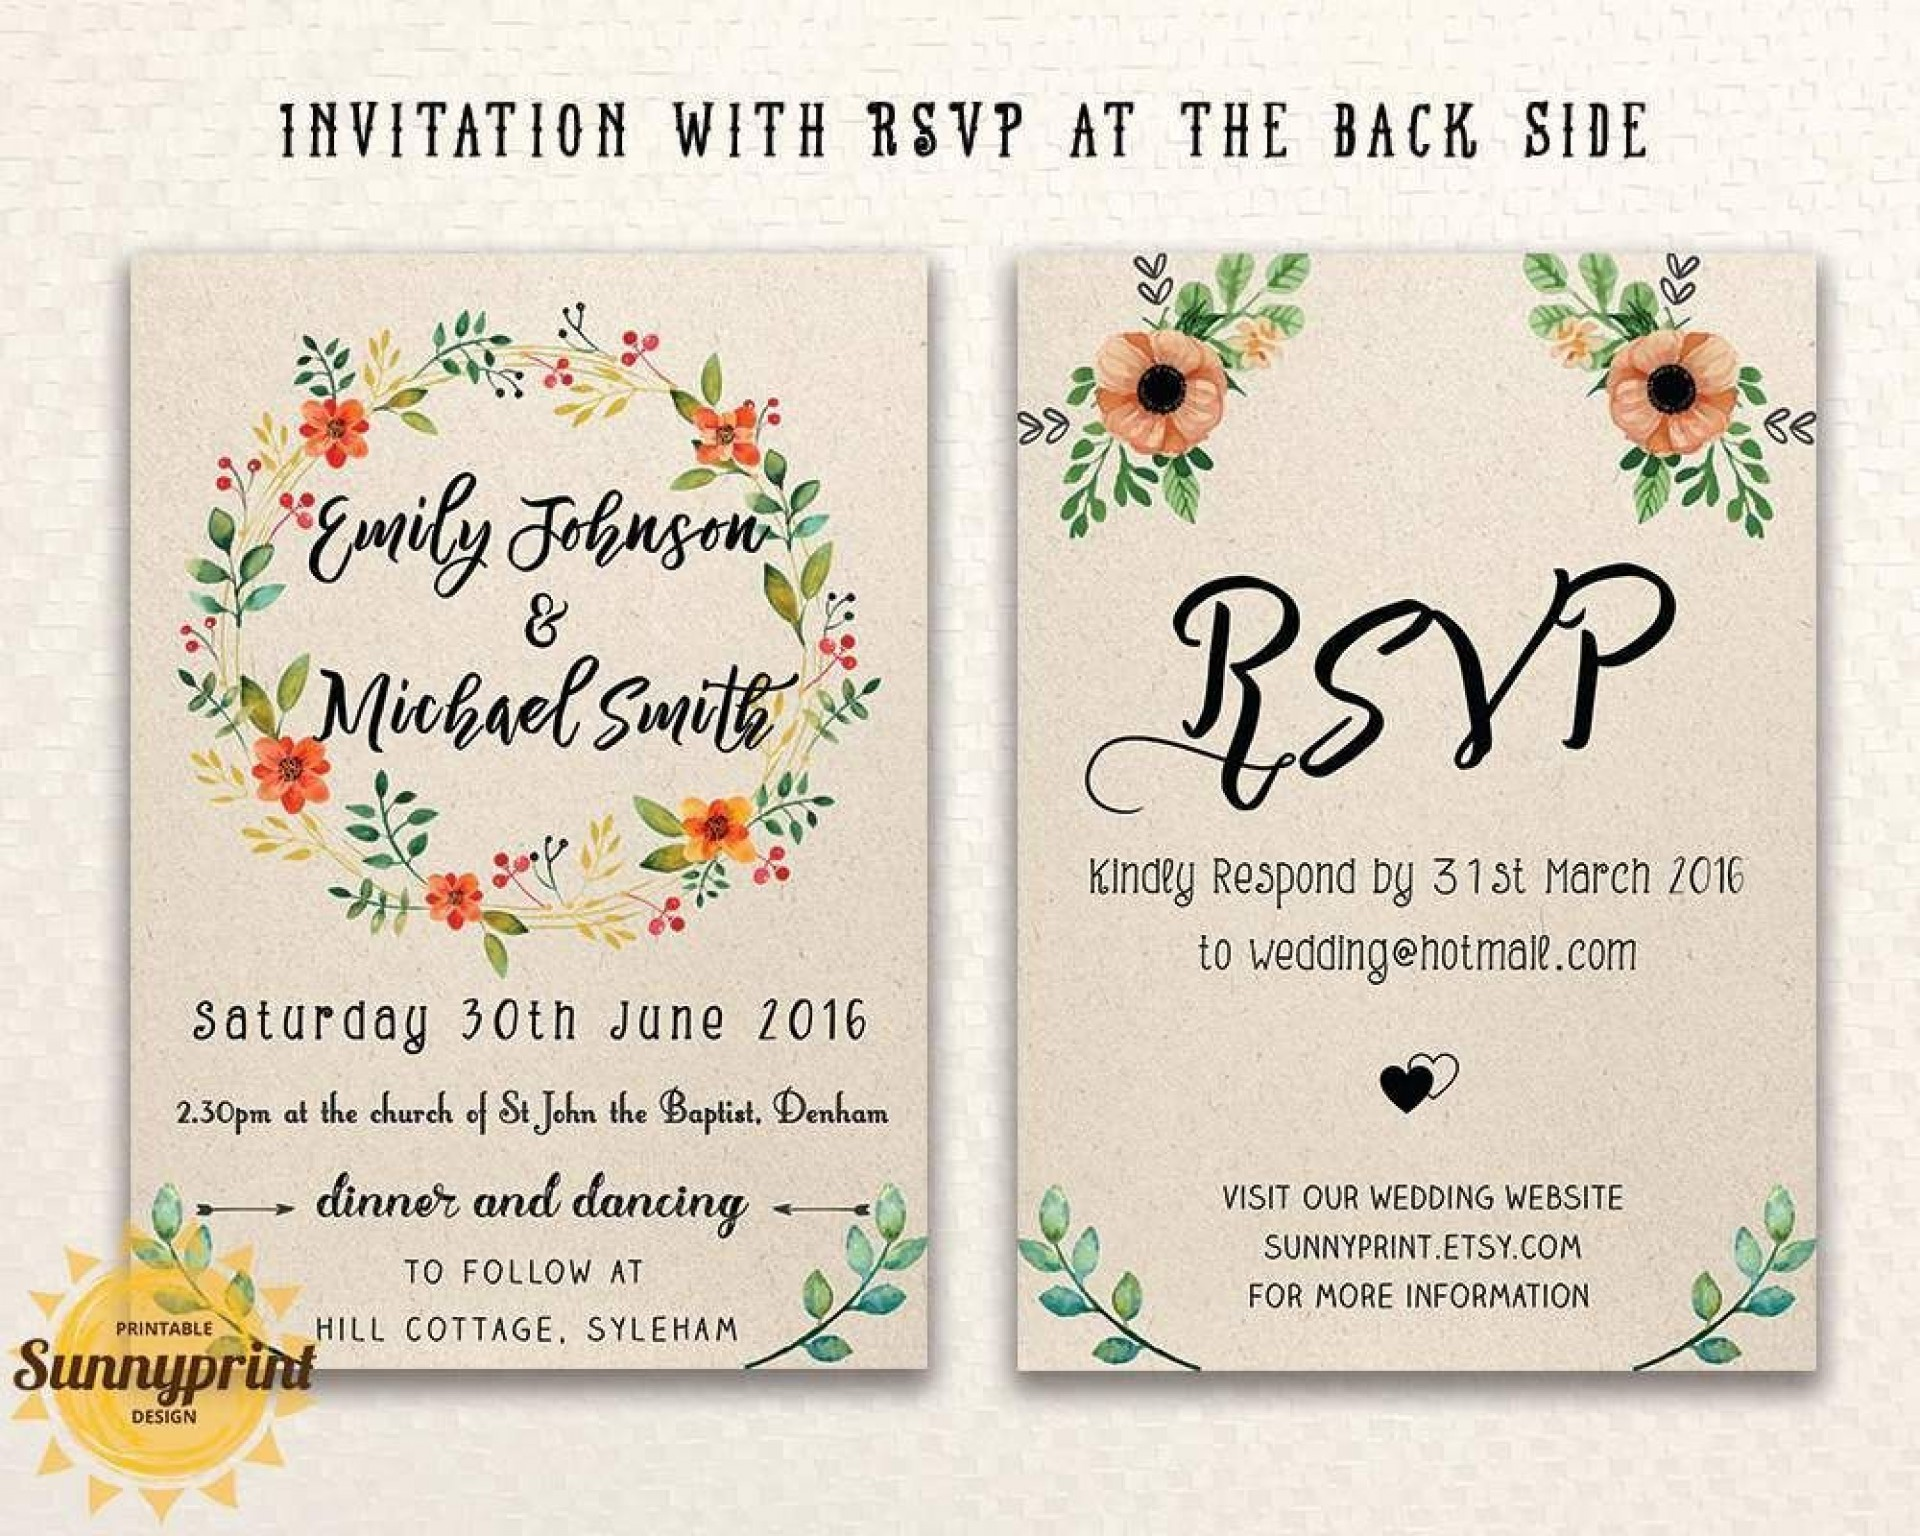 001 Awesome Free Online Invitation Template Australia High Resolution  Party Invite1920